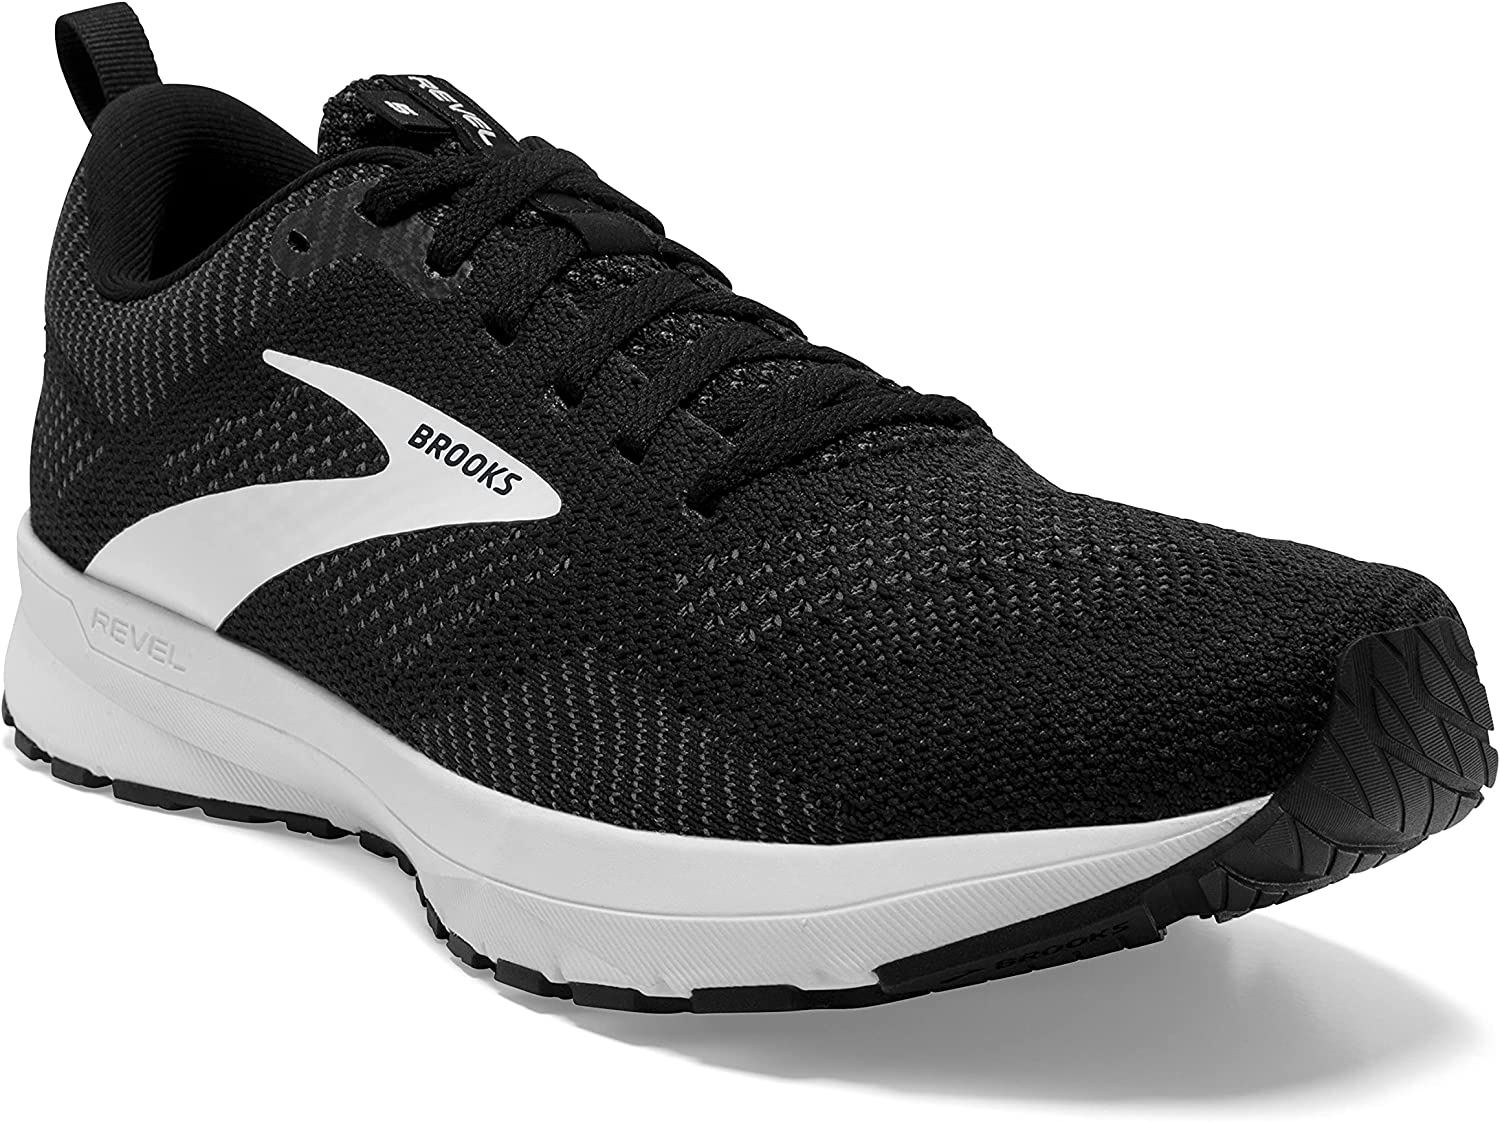 NEW before selling ☆ Outlet ☆ Free Shipping Brooks Revel 5 Men's Shoe Neutral Running